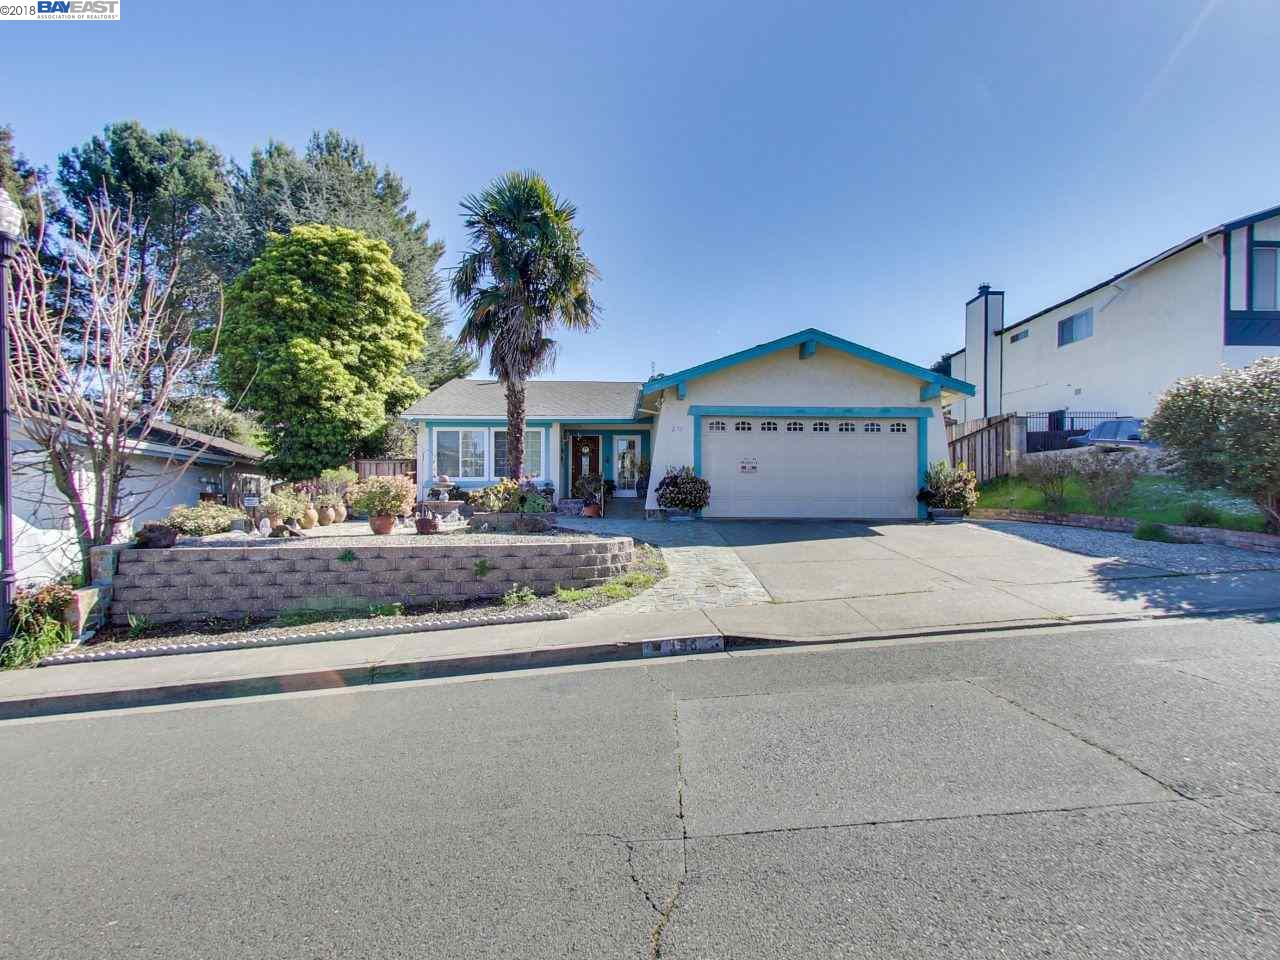 Multi-Family Home for Sale at 295 Sparrow Drive 295 Sparrow Drive Hercules, California 94547 United States